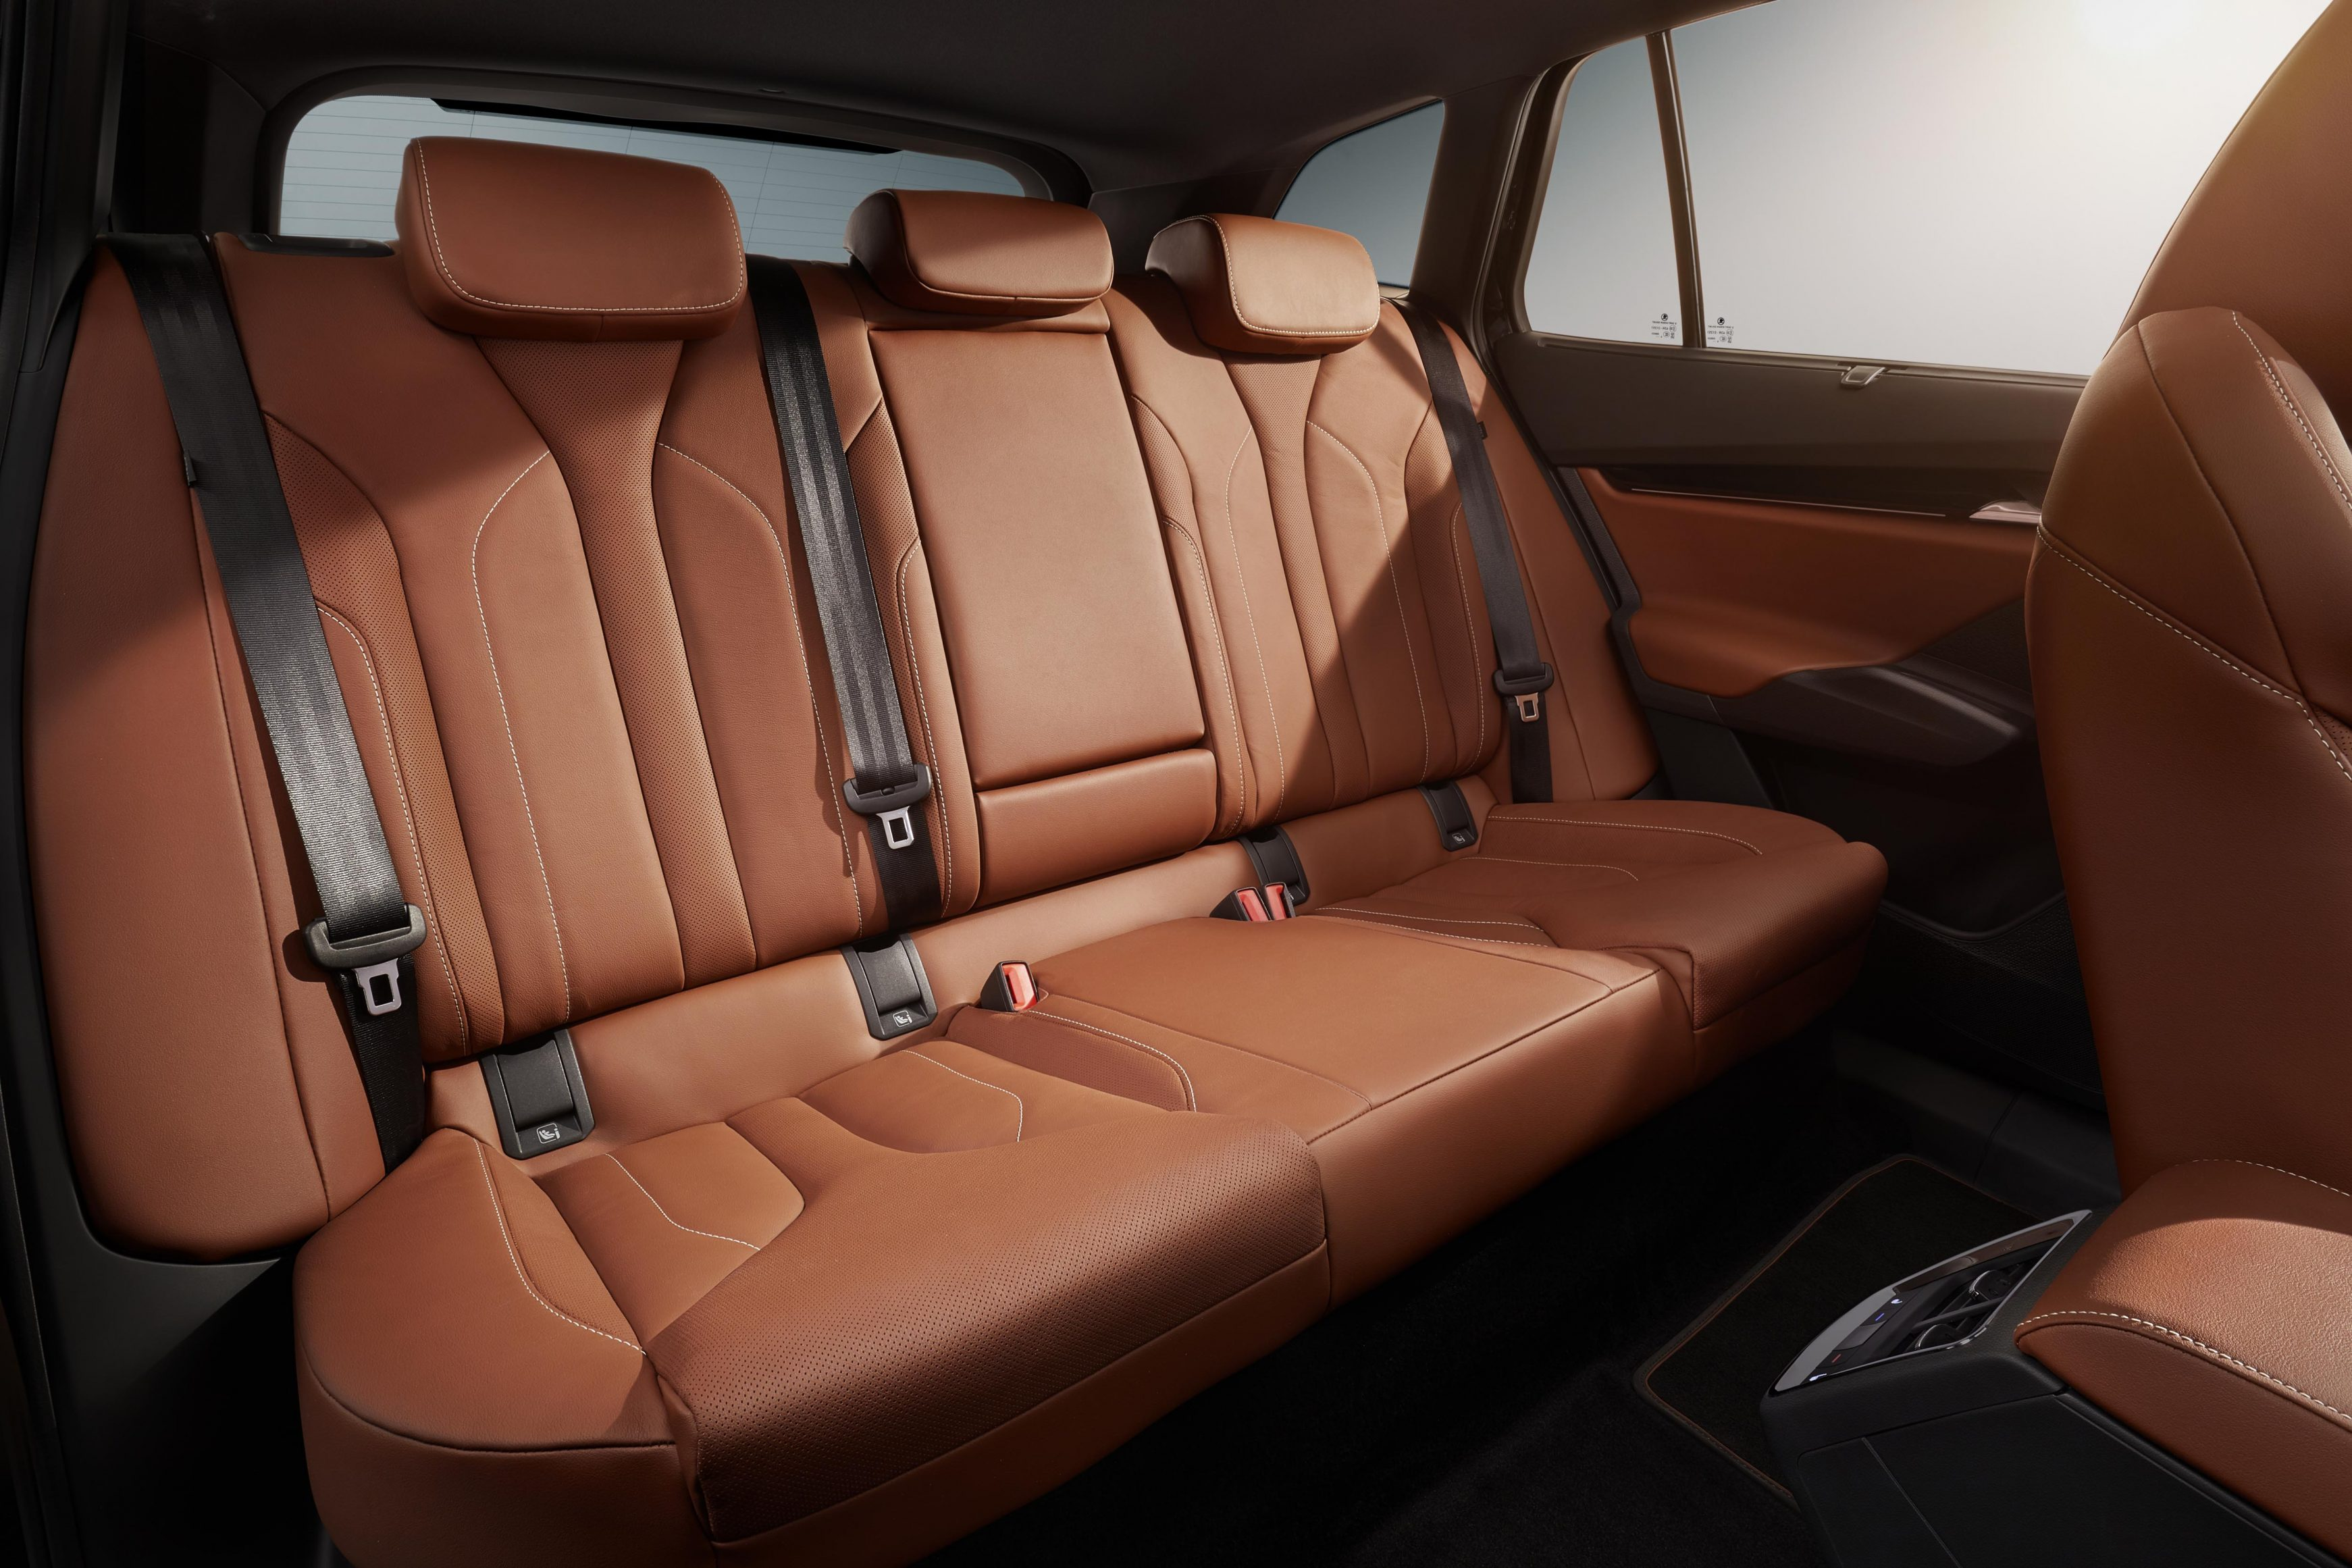 The rear bench of the Skoda Enyaq iV has a folding back rest that can be used as an armrest